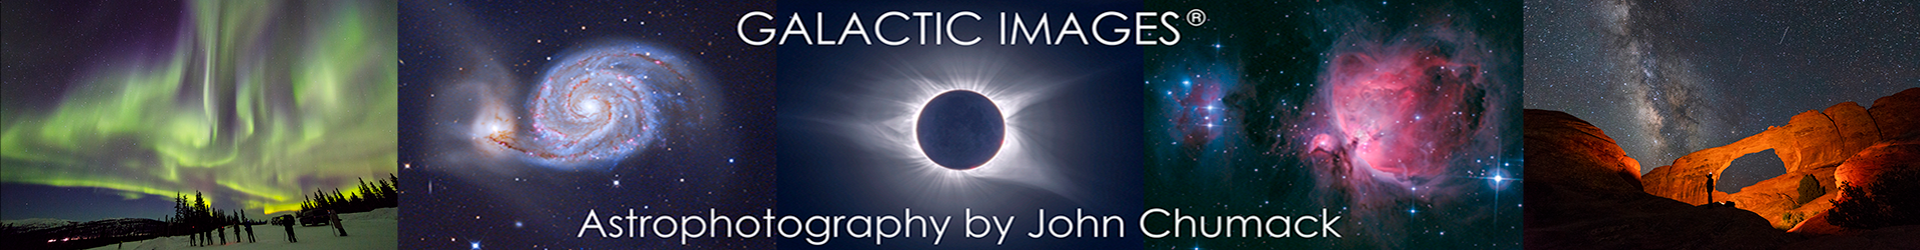 Galactic Images Logo